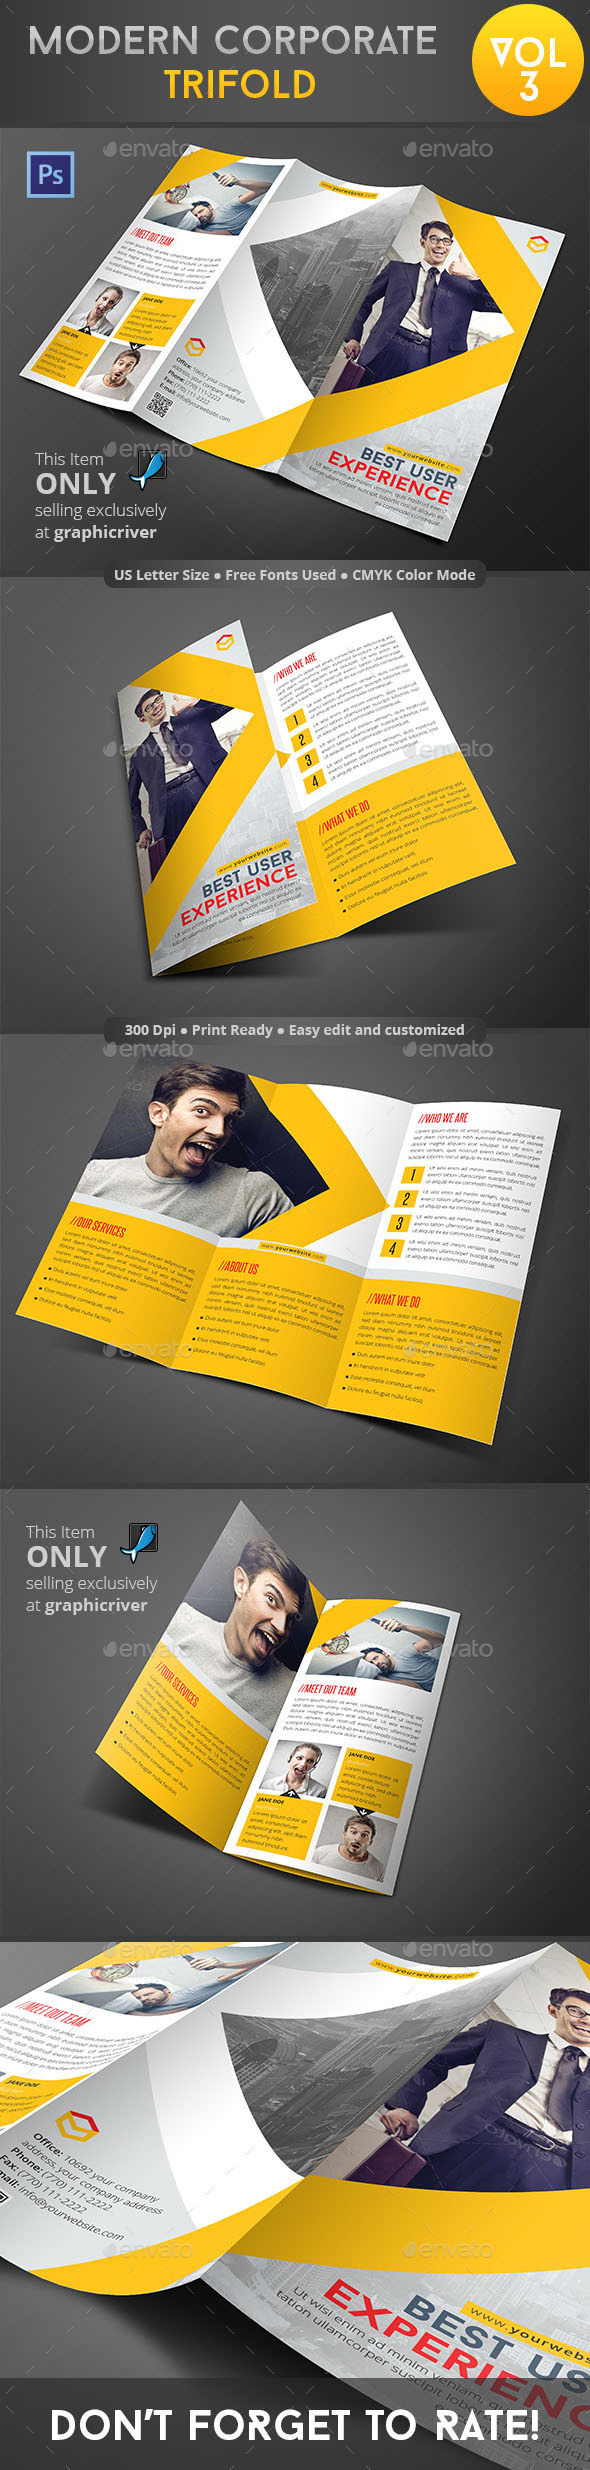 Modern Corporate Trifold Vol 3 - Corporate Brochures